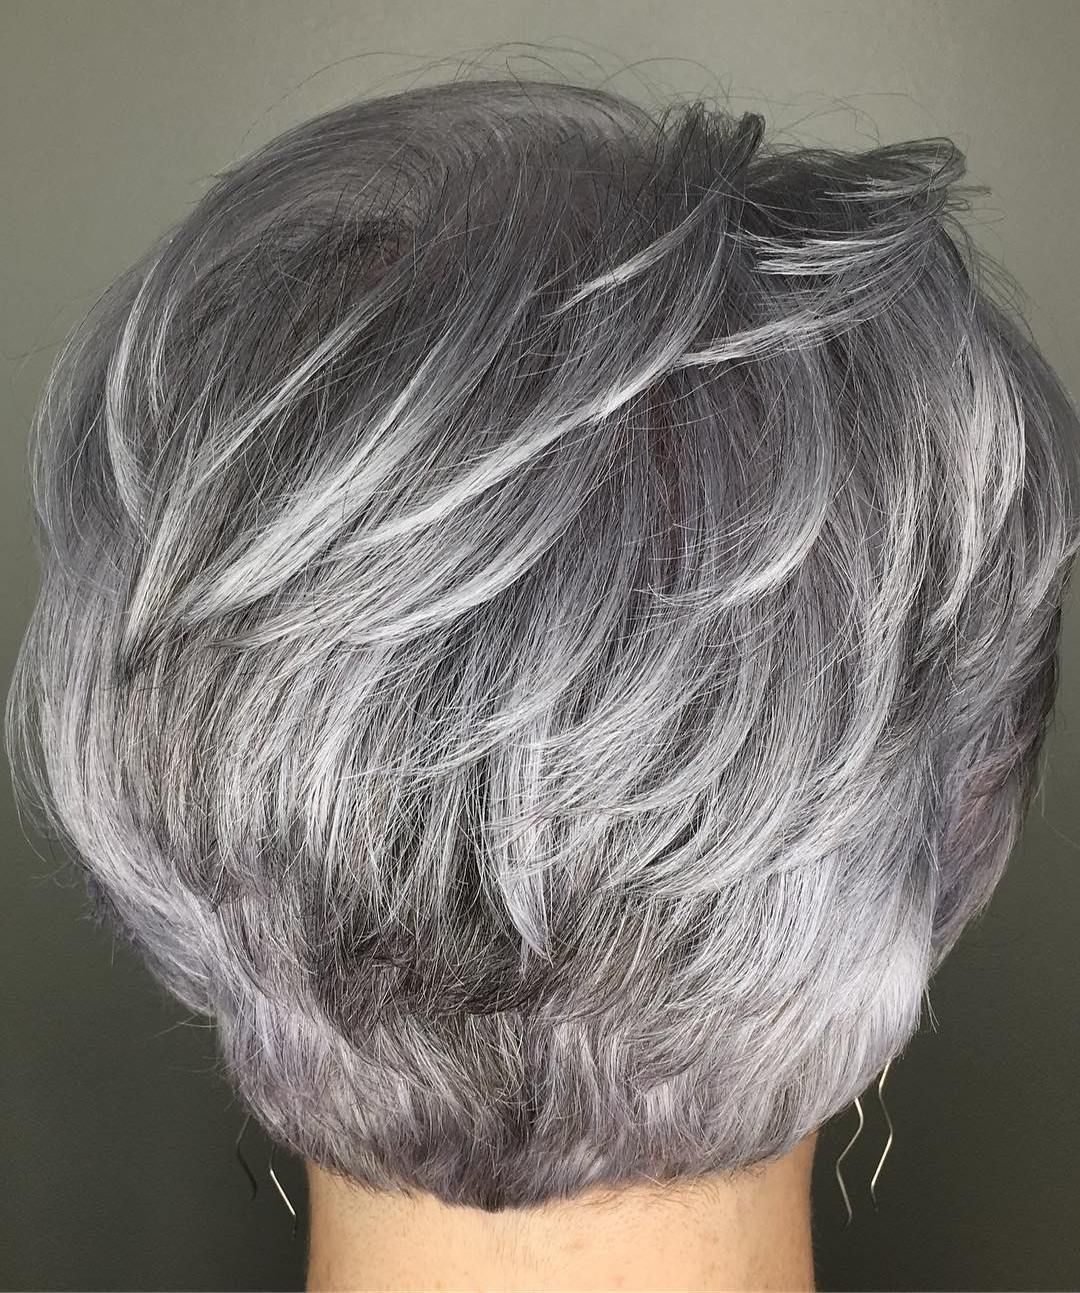 Cool Toned Silver Balayage Pixie Hair Styles Gorgeous Gray Hair Short Grey Hair